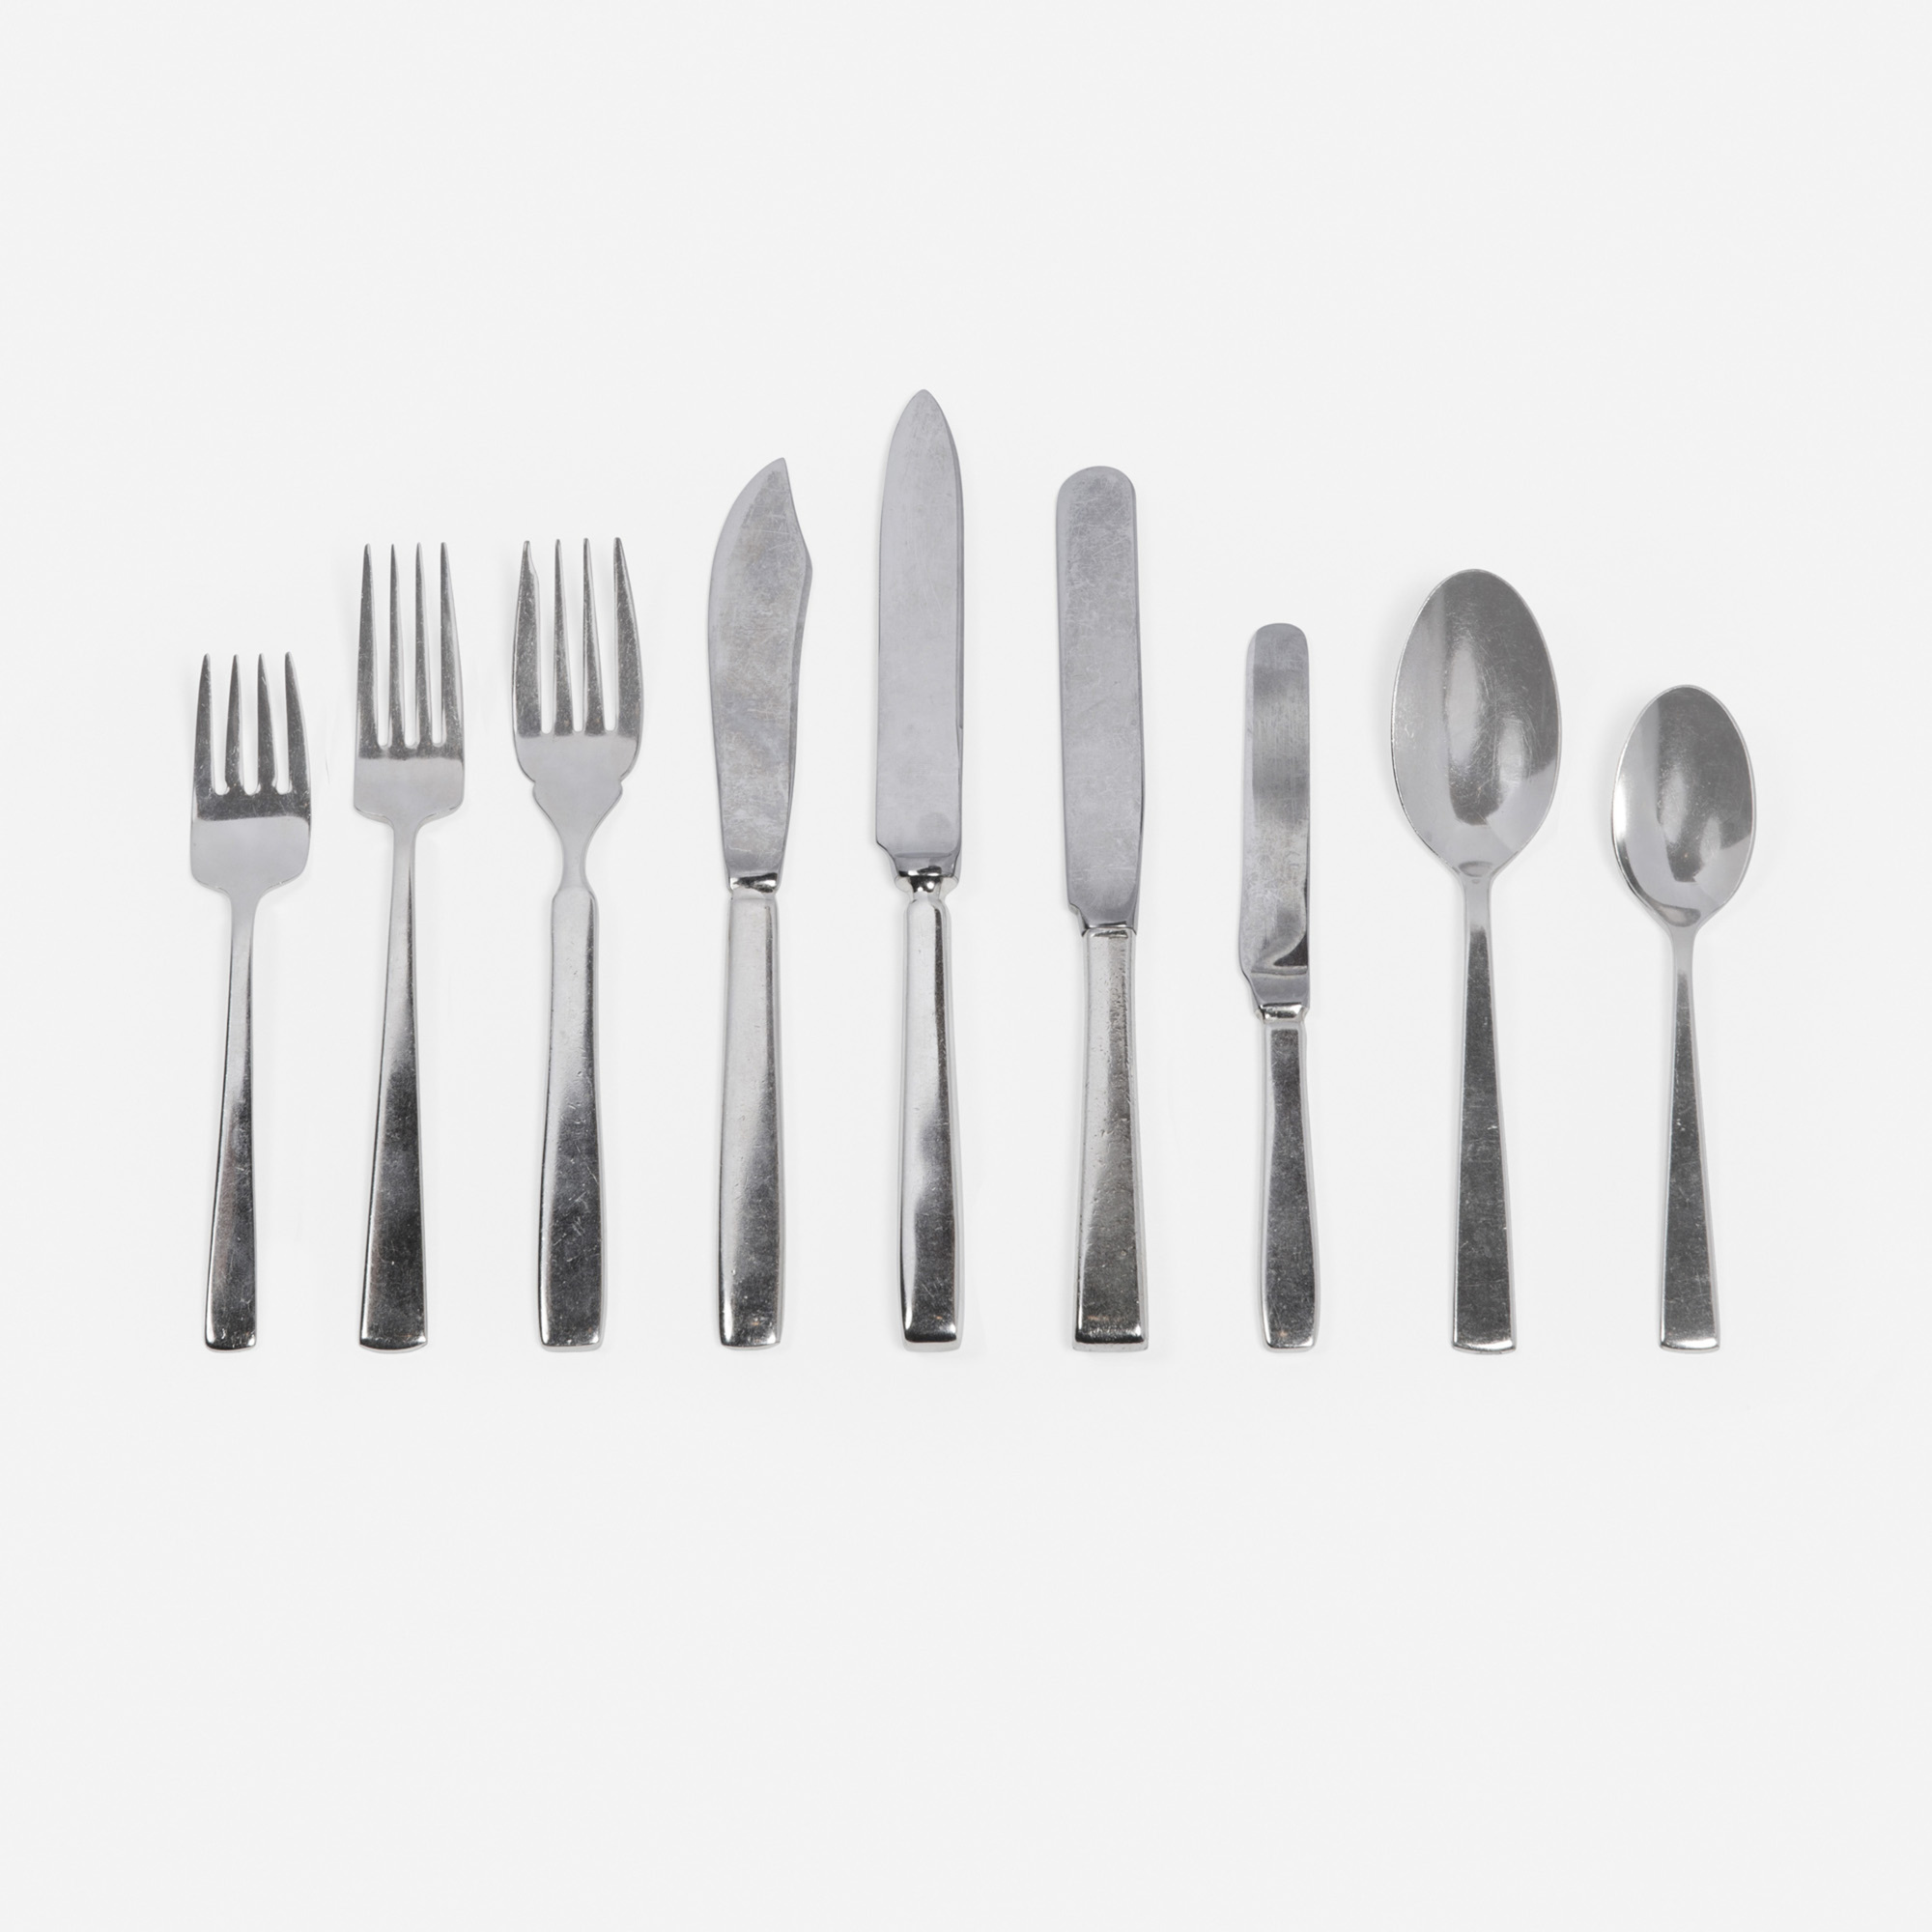 631: Garth and Ada Louise Huxtable / Four Seasons Luncheon flatware from the Pool Room, service for twelve (1 of 1)